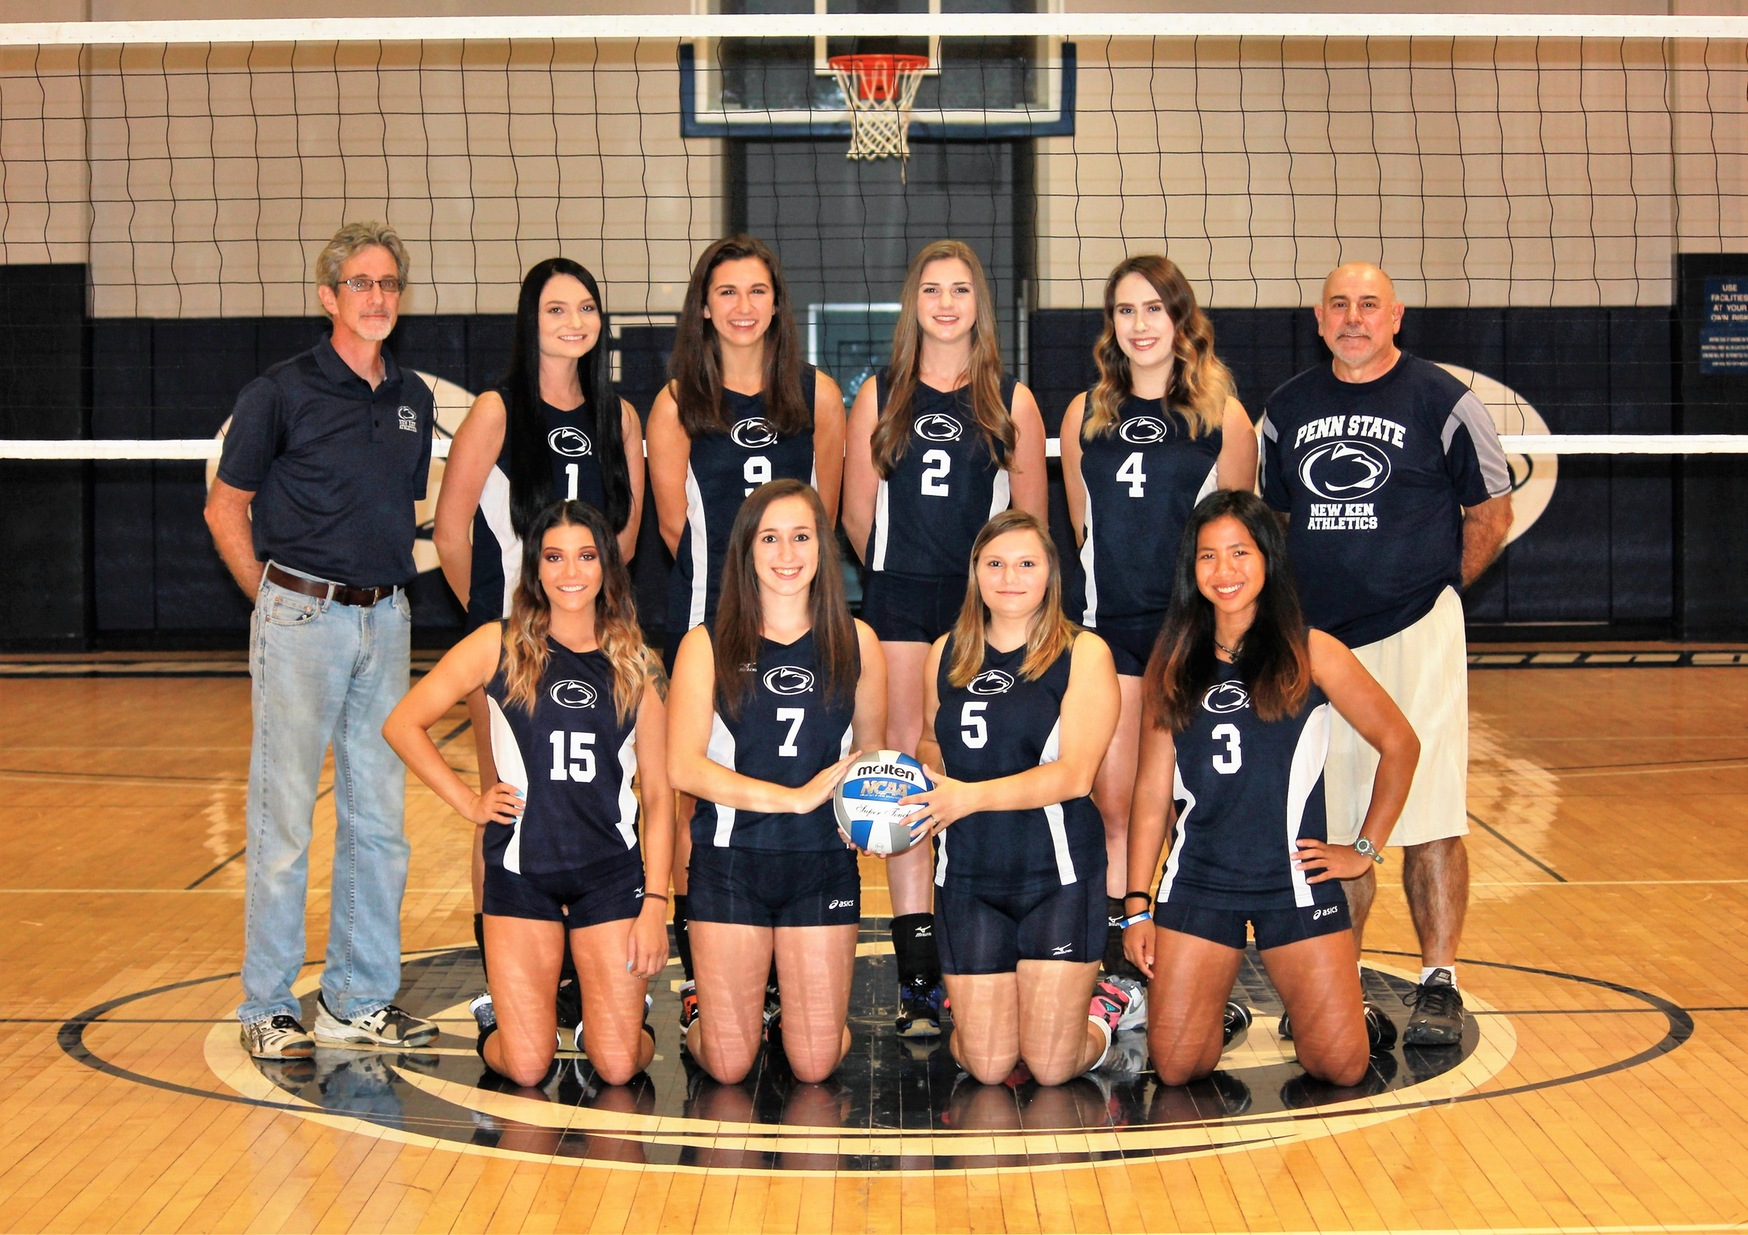 Women's Volleyball Splits on Day One of the PSUCA/WPCC Challenge